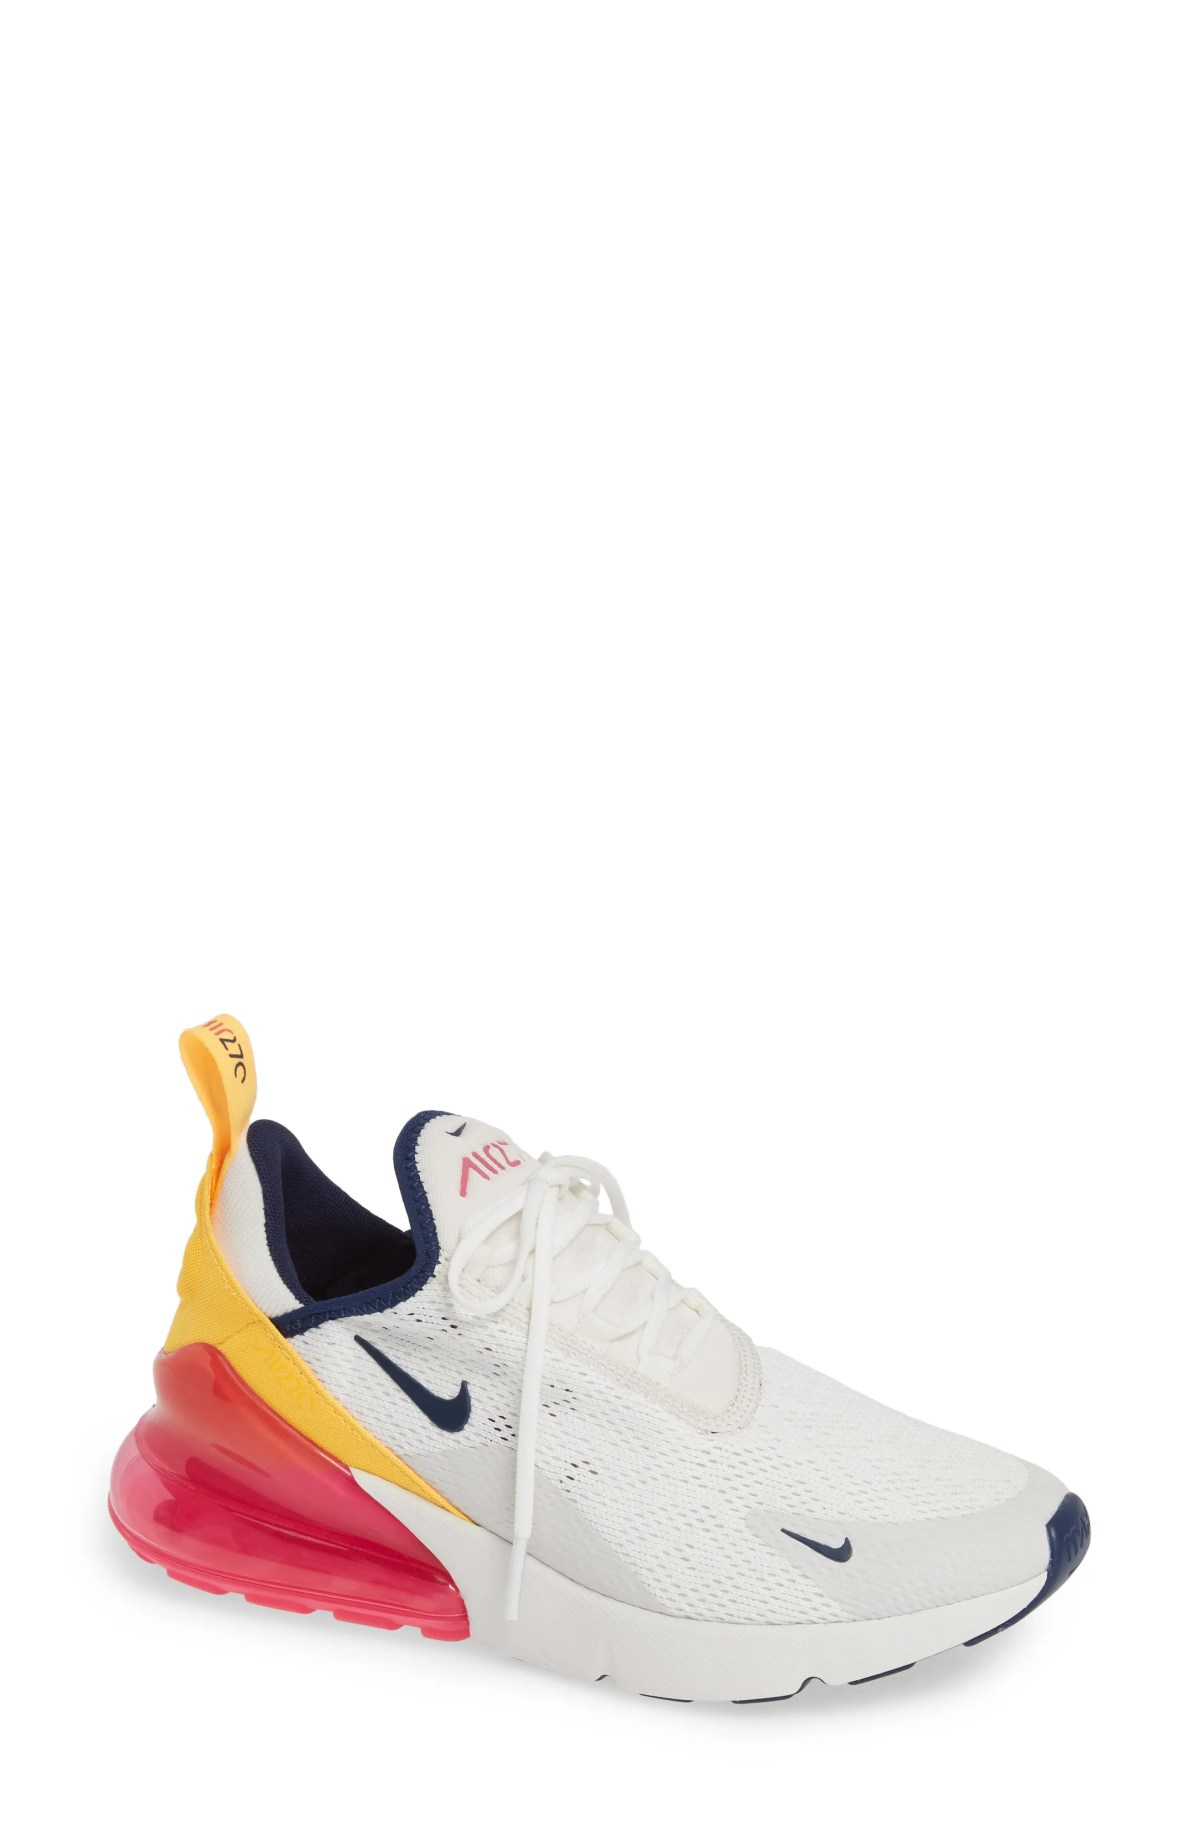 NIKE Air Max 270 Premium Sneaker, Main, color, WHITE/ NAVY/ LASER FUCHSIA